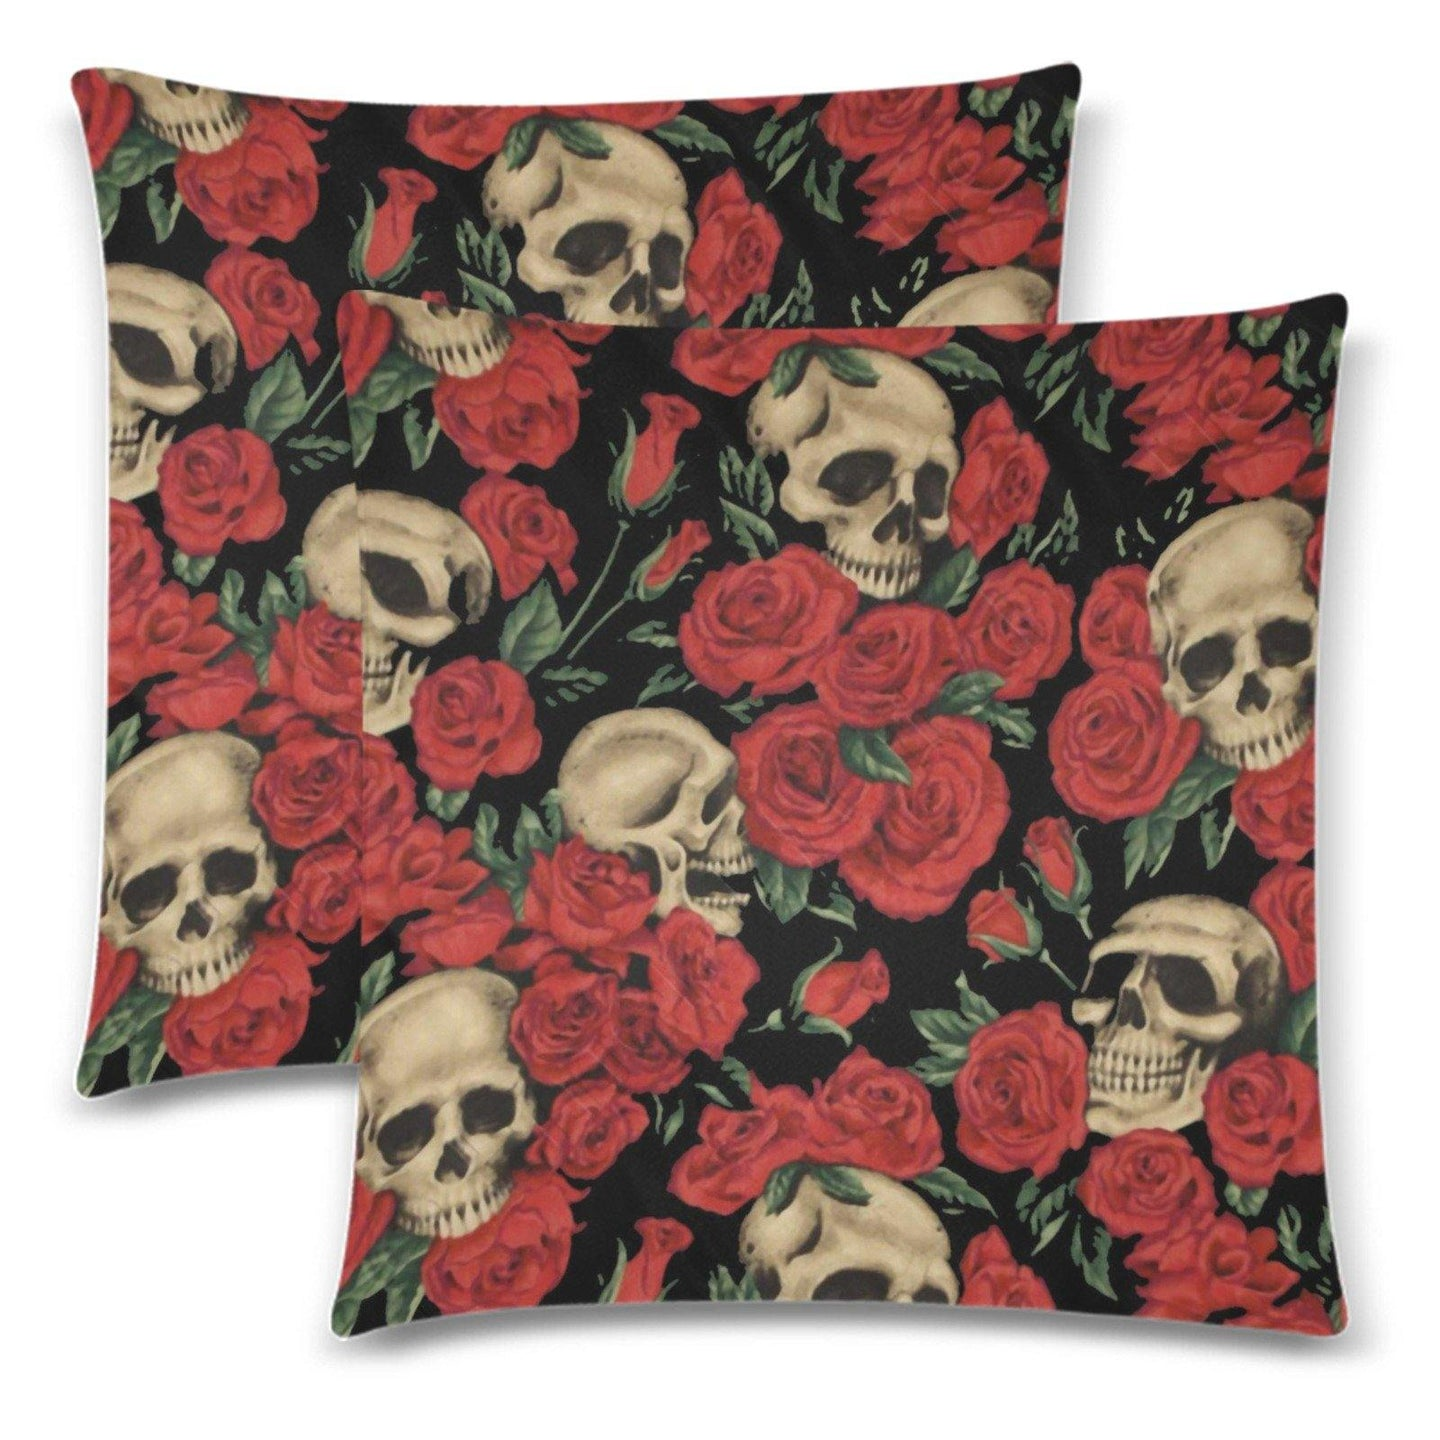 SKULLS & ROSES Throw Pillow Cover 18